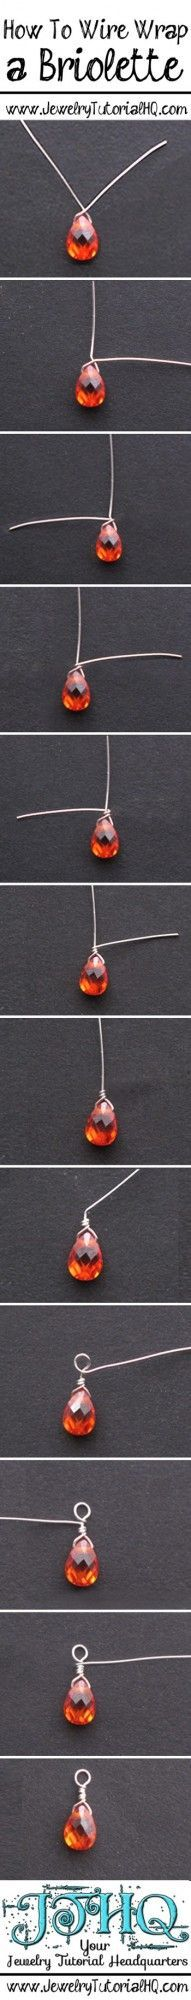 How to wire wrap a briolette step by step tutorial